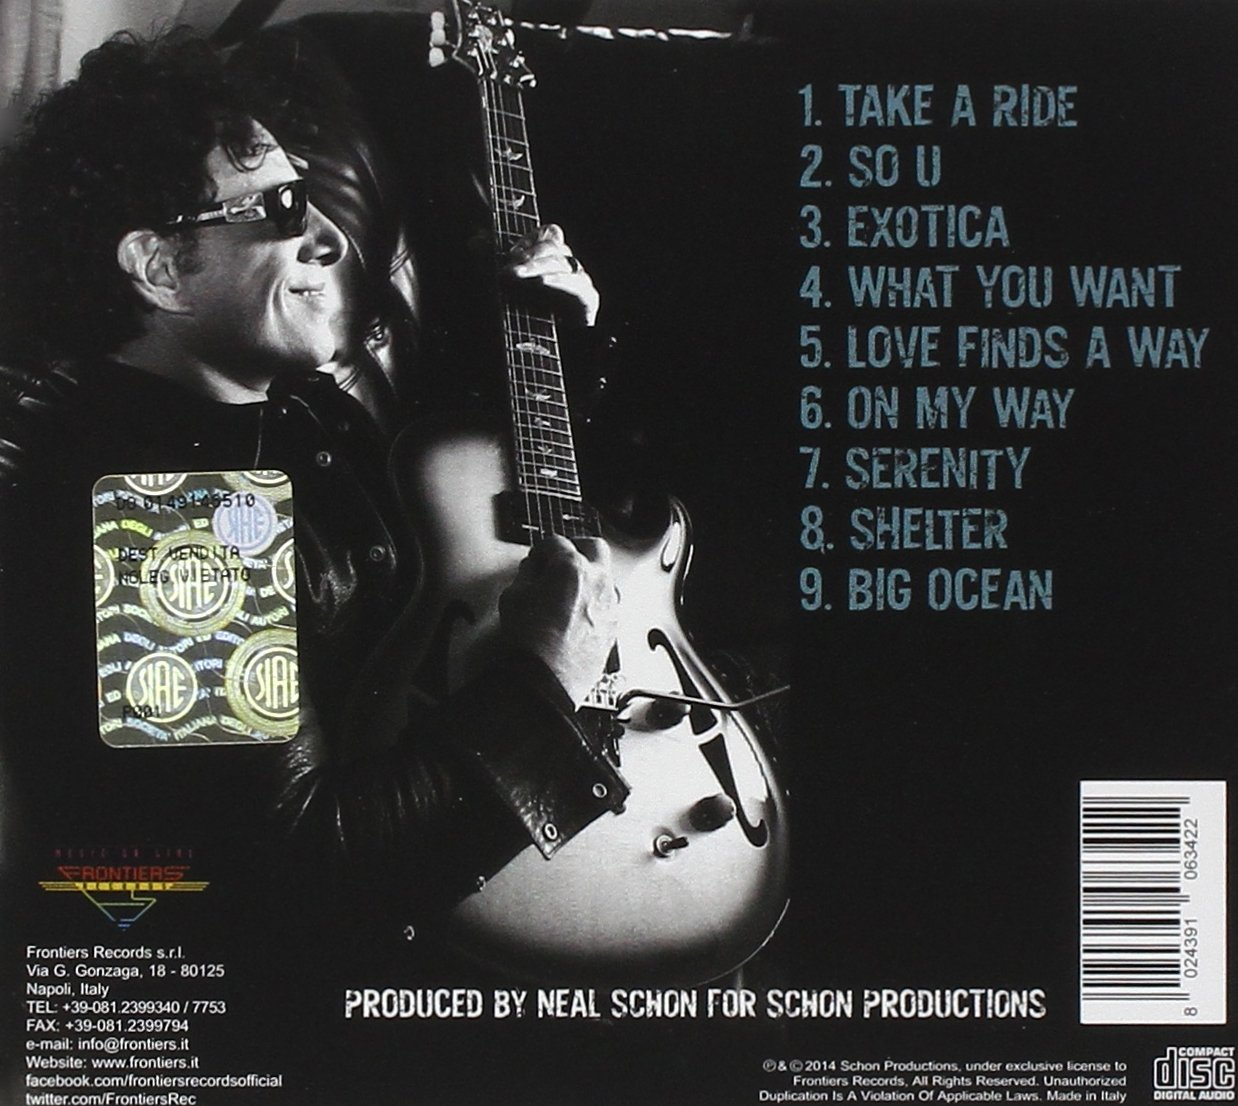 neal schon so u amazon com music